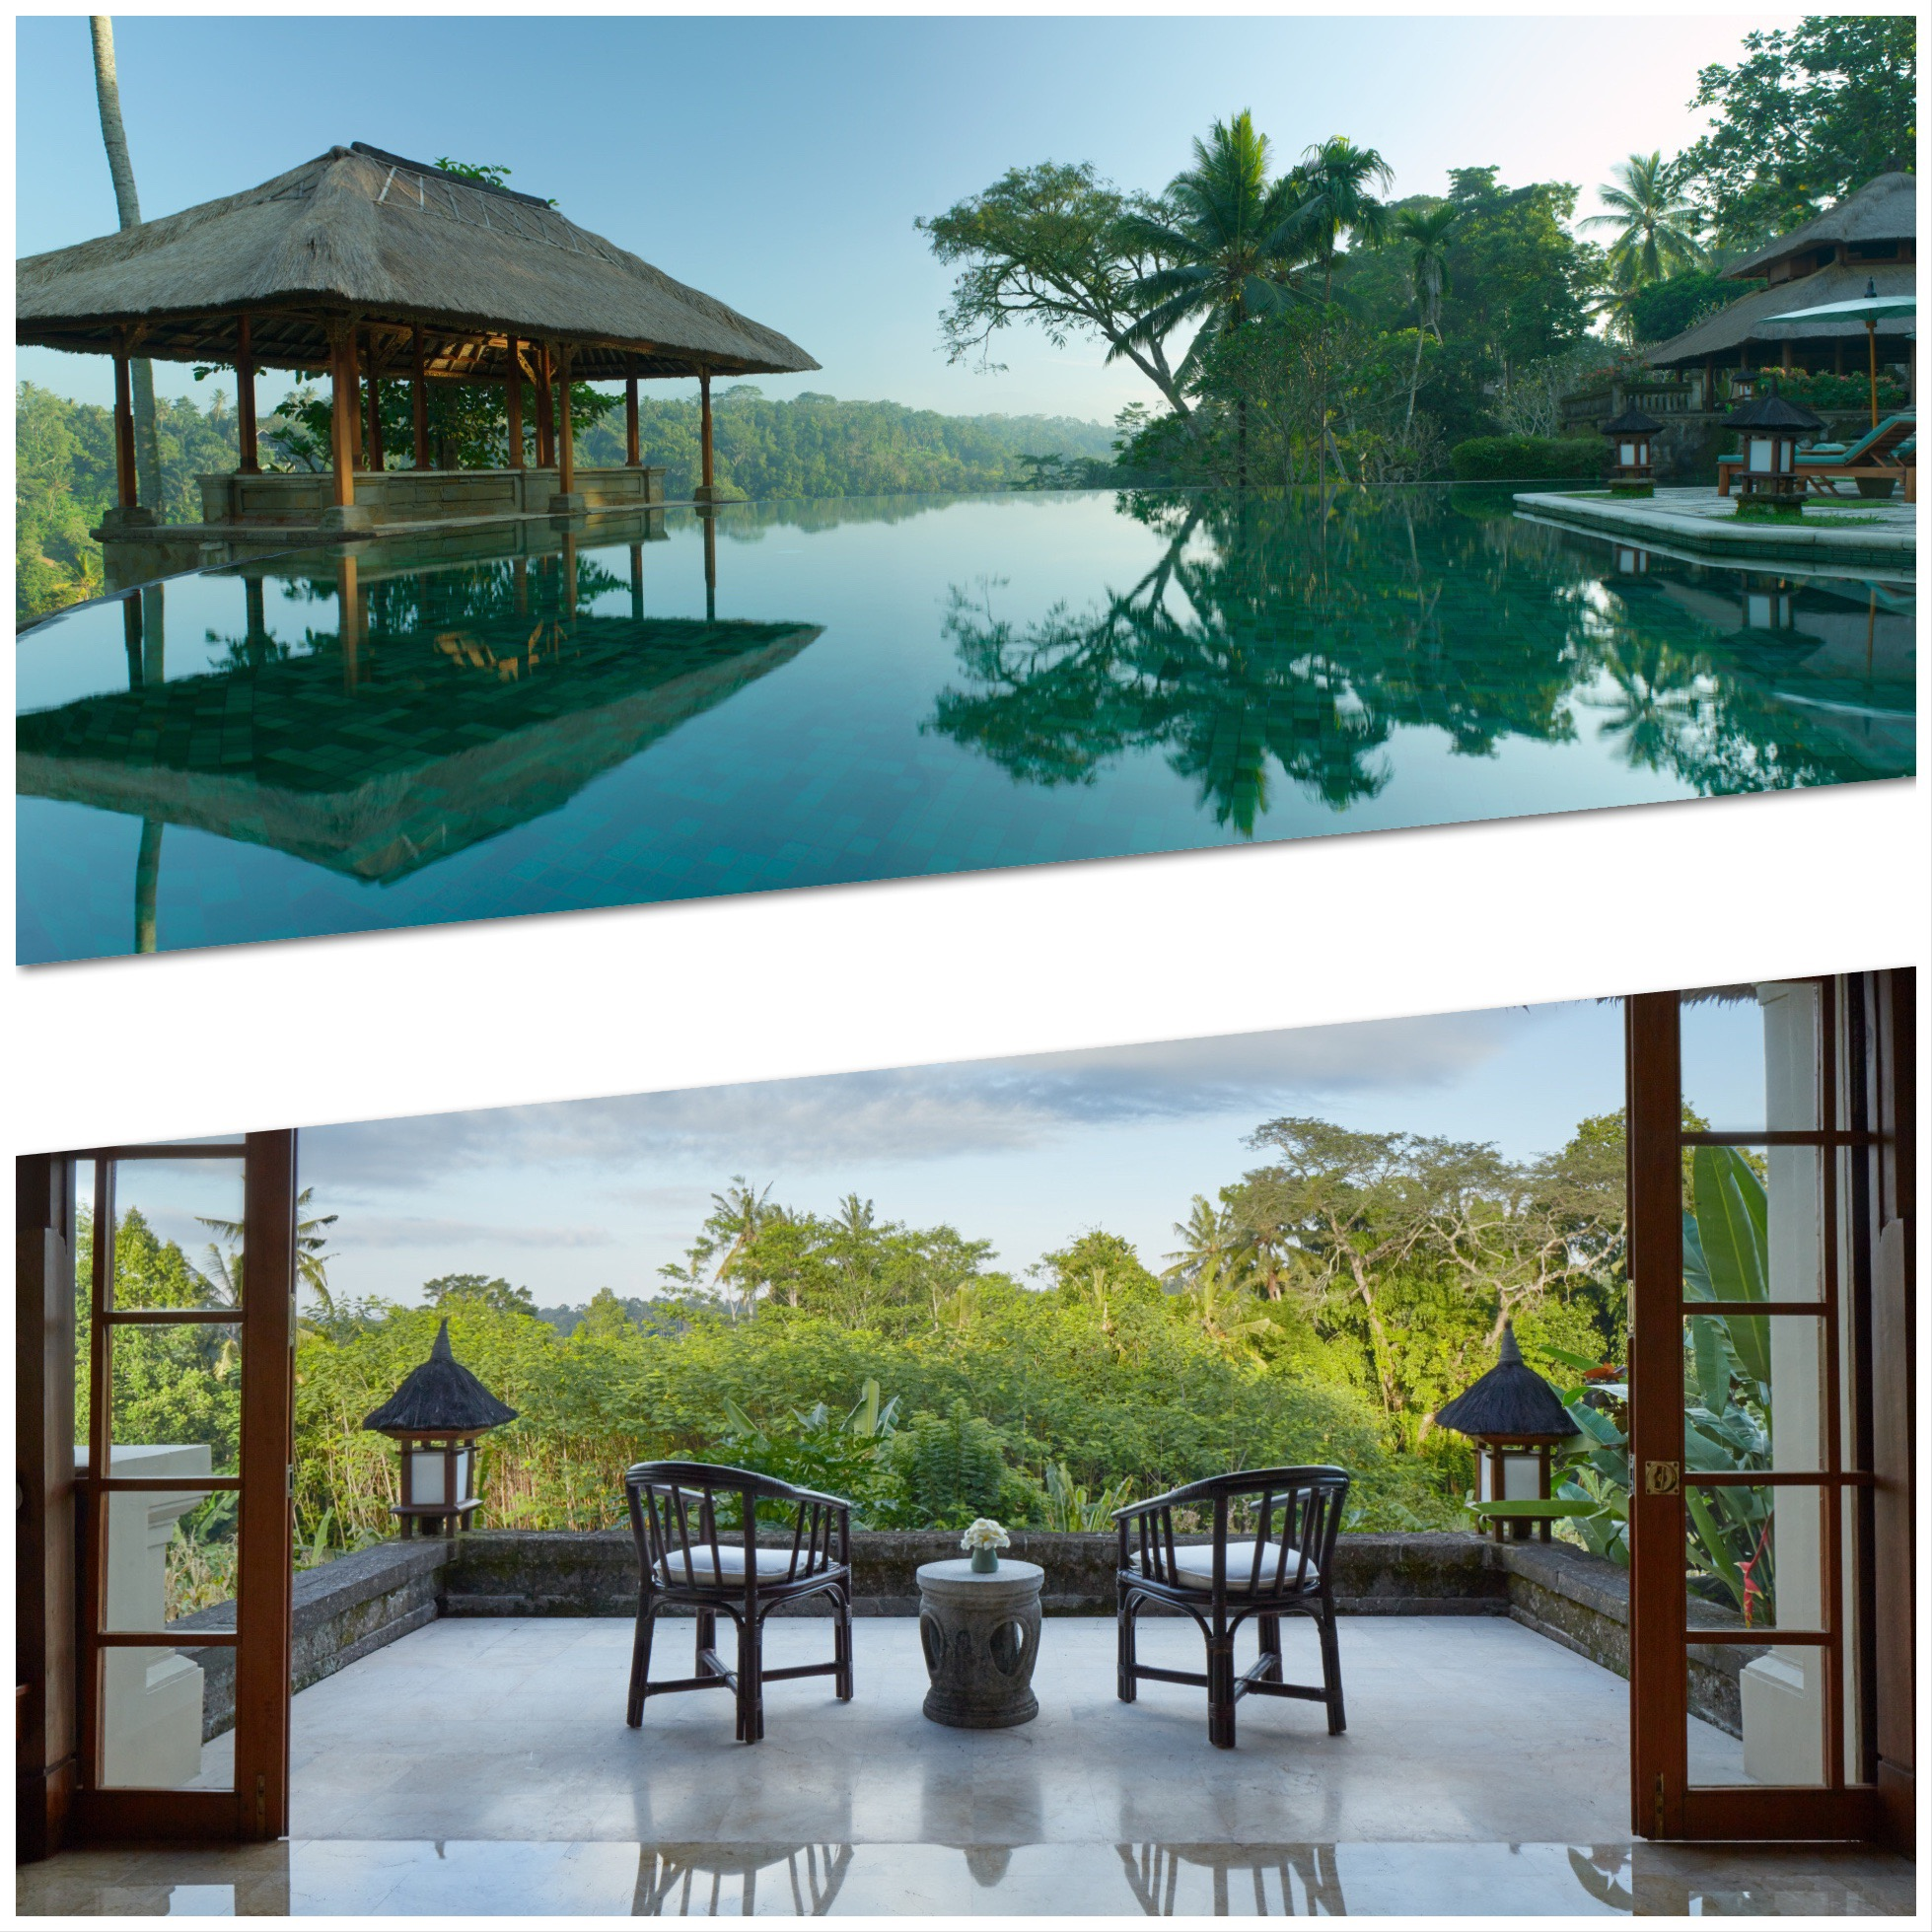 Top, swimming pool and bottom, a view from a suite, both in Amandari, Bali.